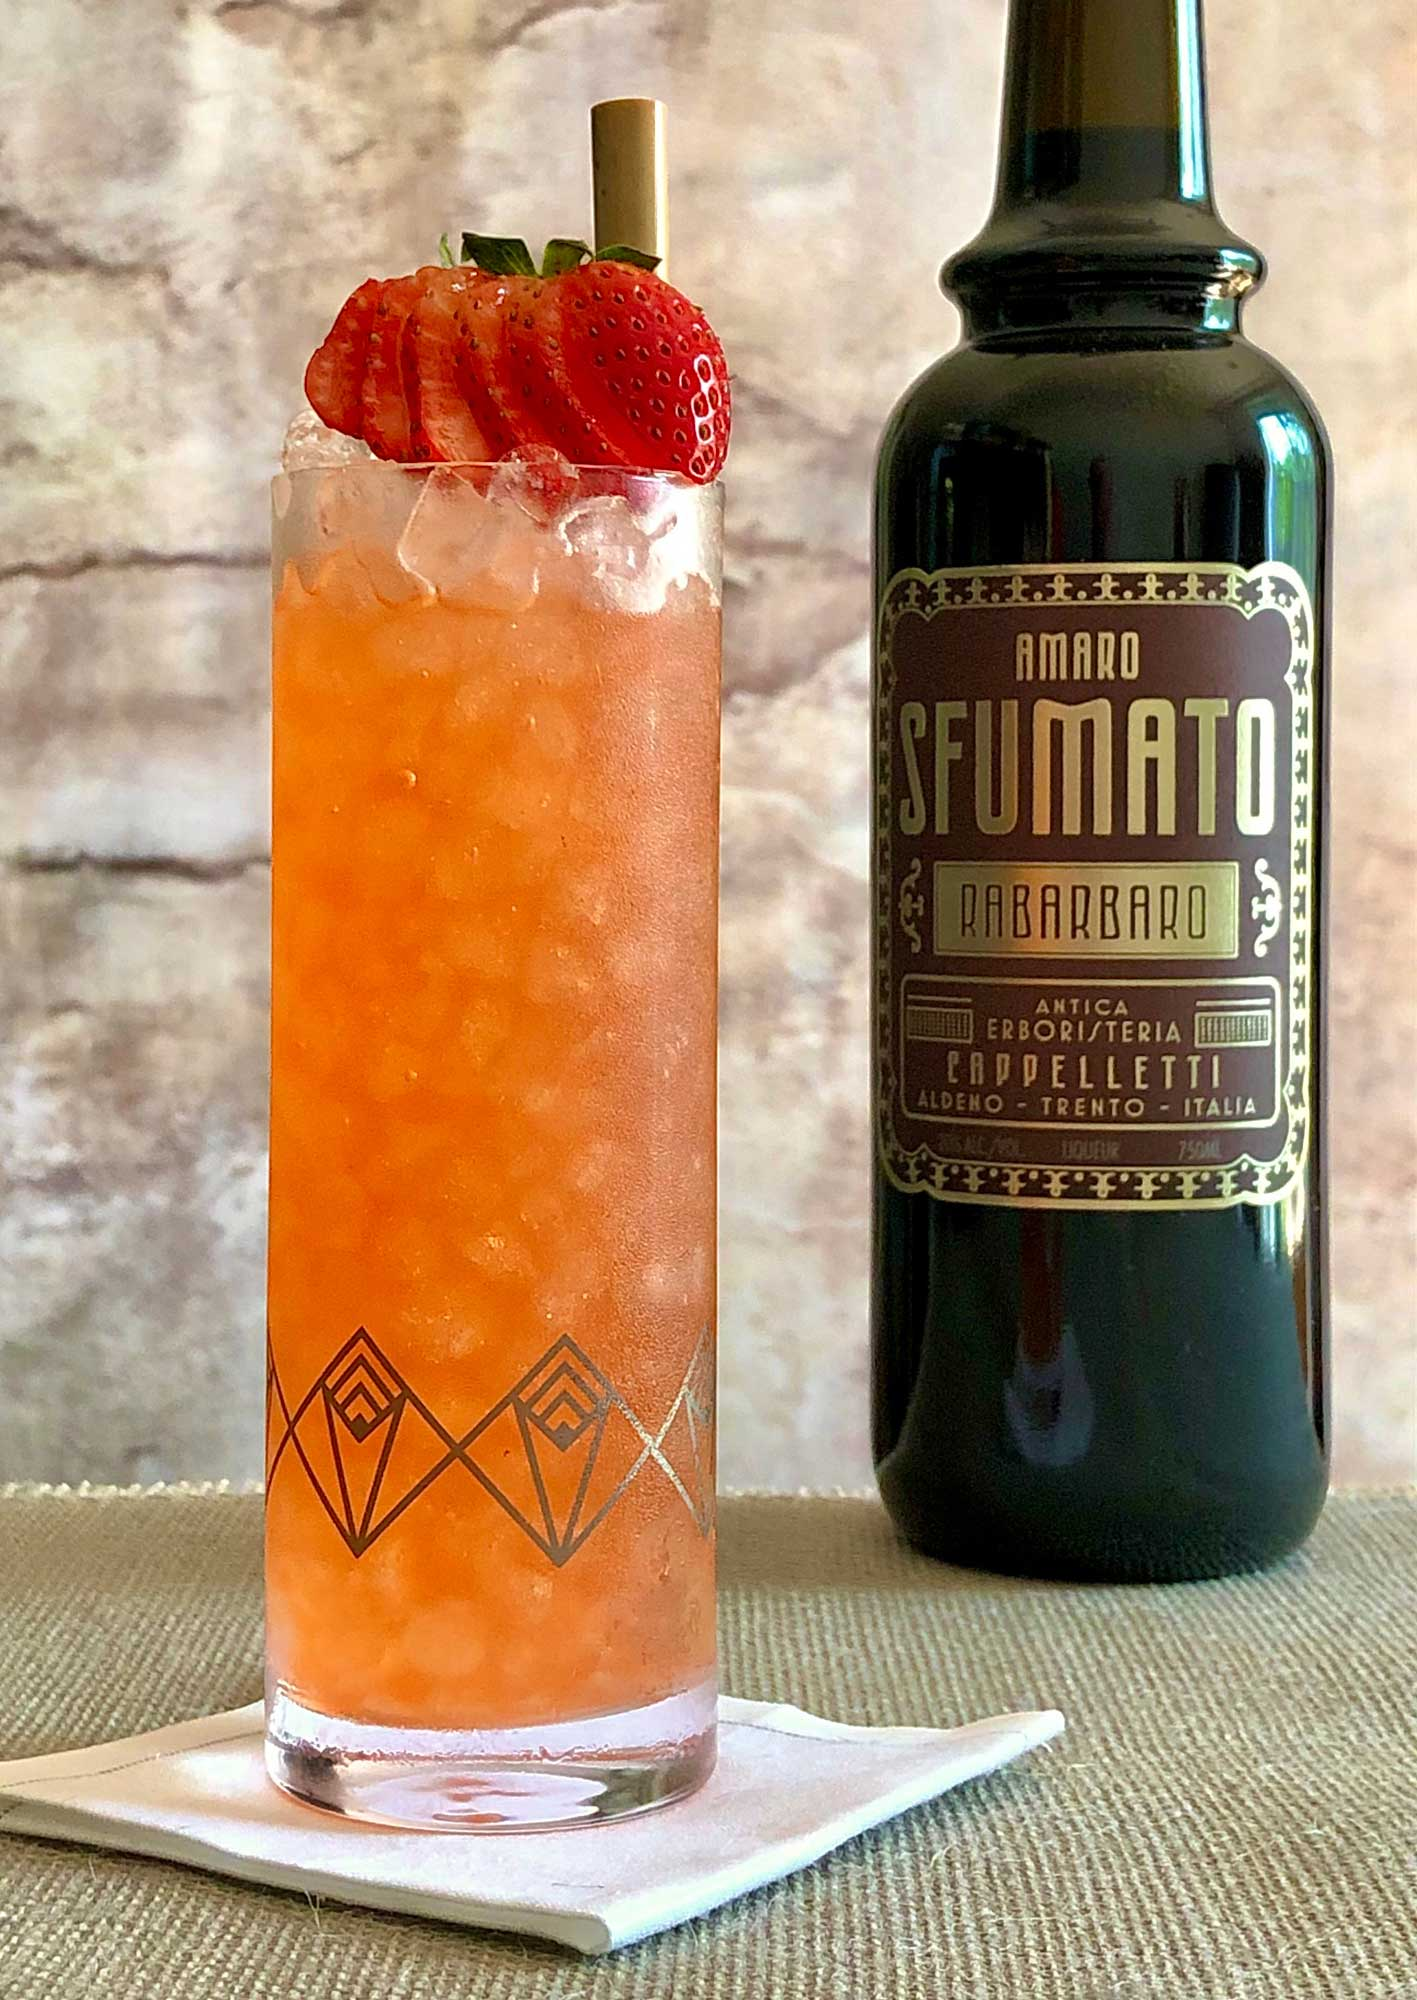 An example of the Lucky Duck Collins, the mixed drink (collins), by Kevin Bradel, Raines Law Room, NYC, featuring Plymouth Gin, seltzer, lemon juice, simple syrup, and Amaro Sfumato Rabarbaro; photo by Lee Edwards